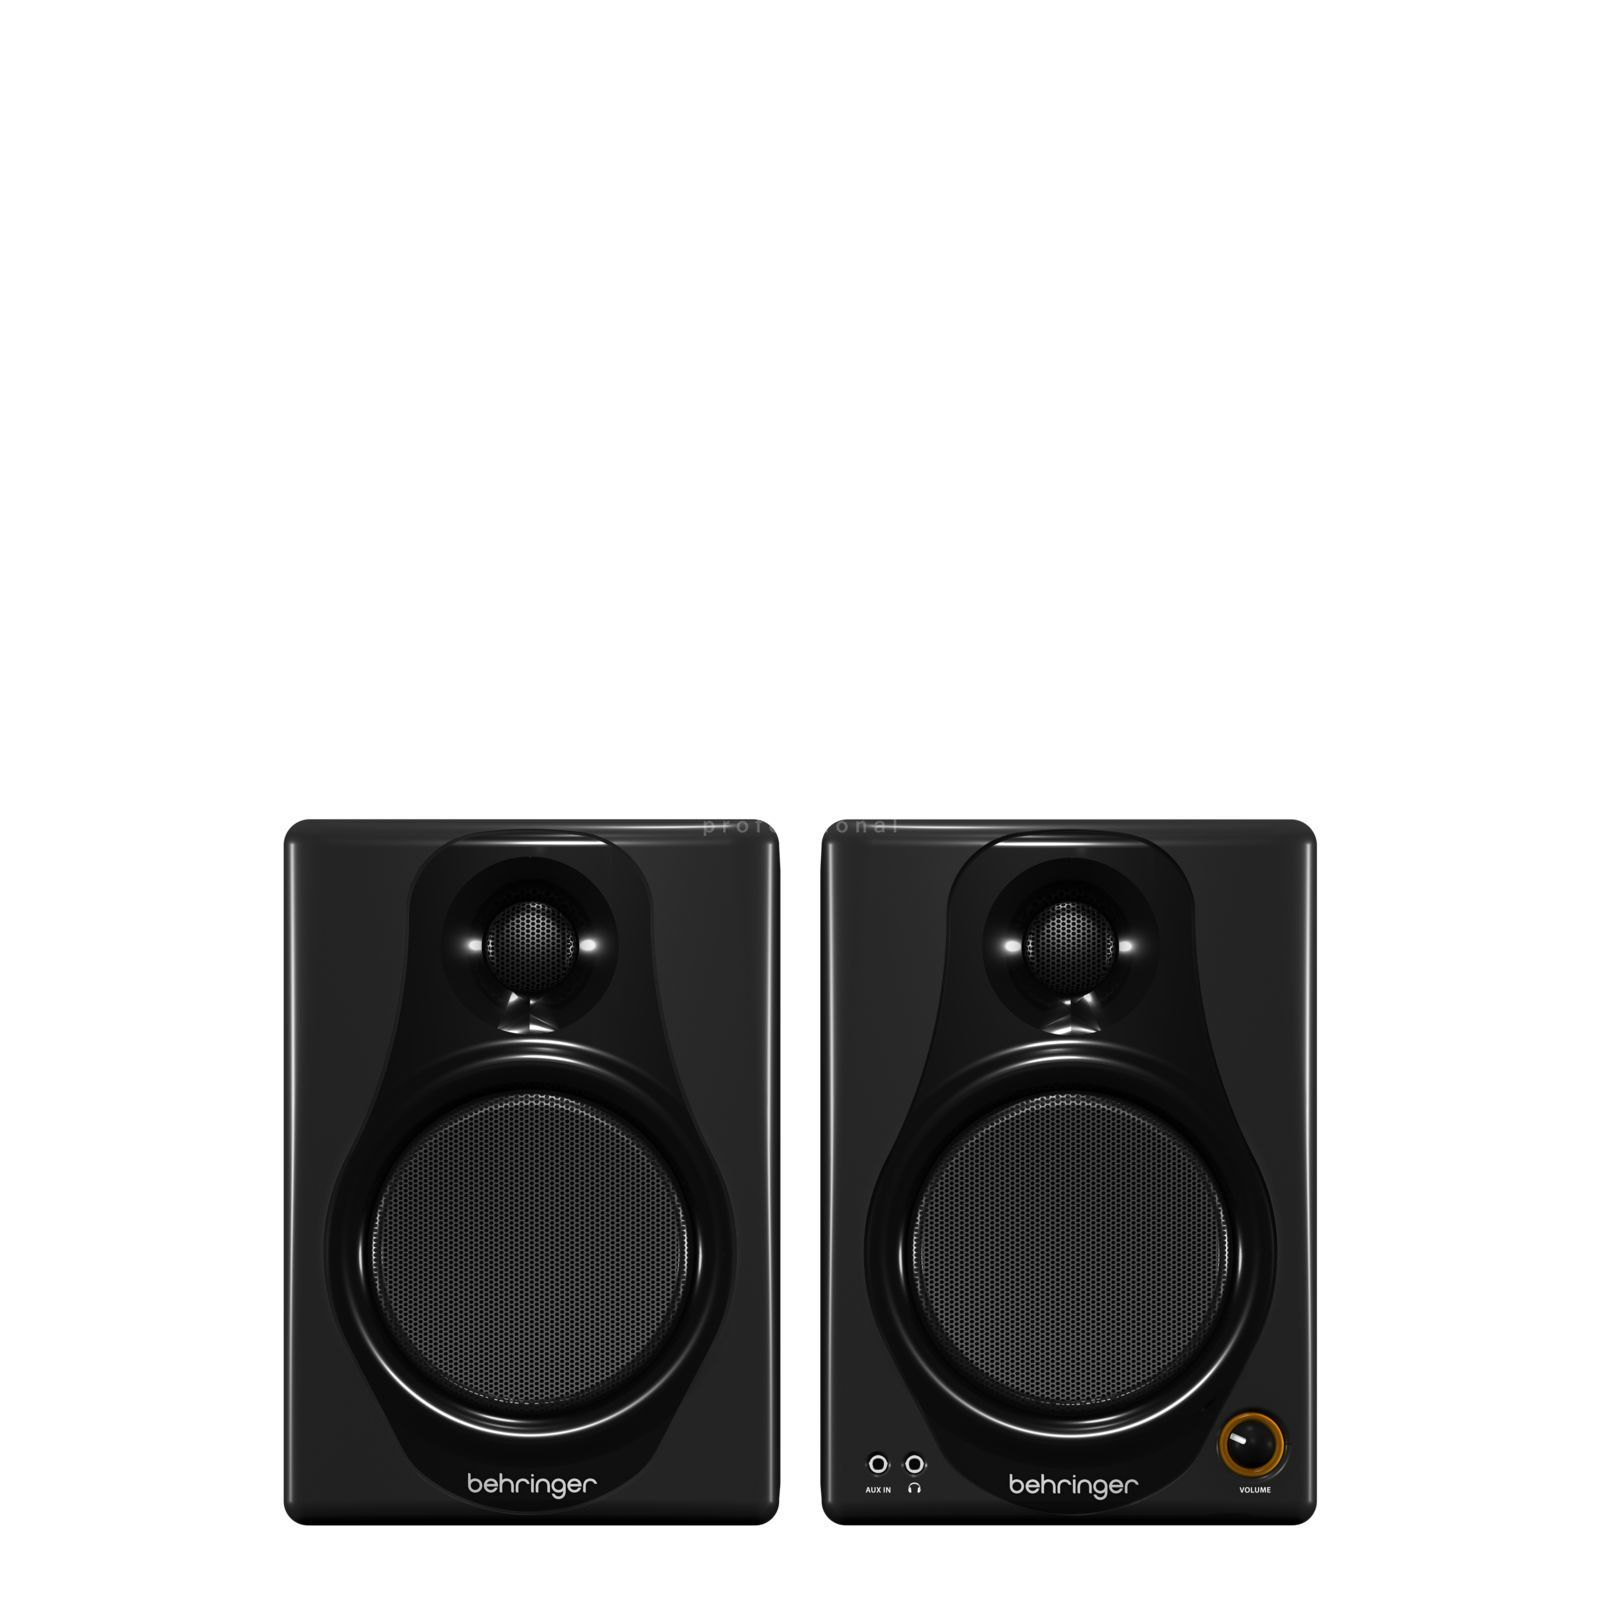 Behringer Media 40 USB Digital Monitor Speaker Image du produit